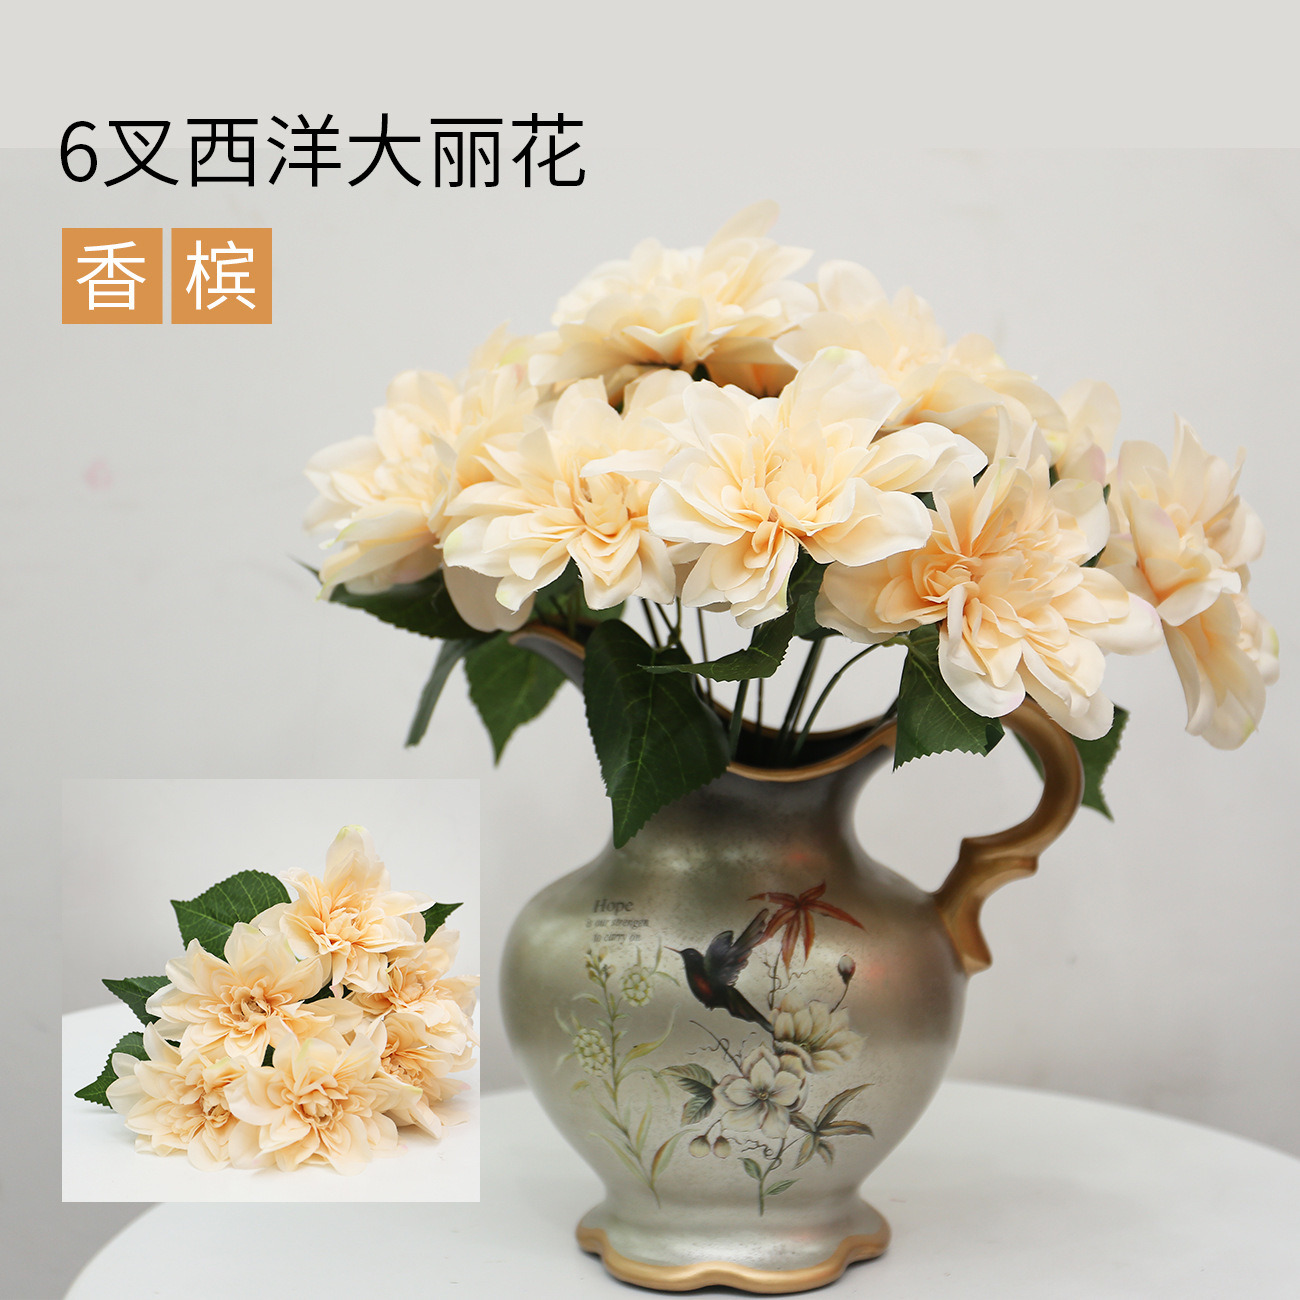 Simulation Décoration China Rose Ornaments Home Decoration Artificial Rose Simulation